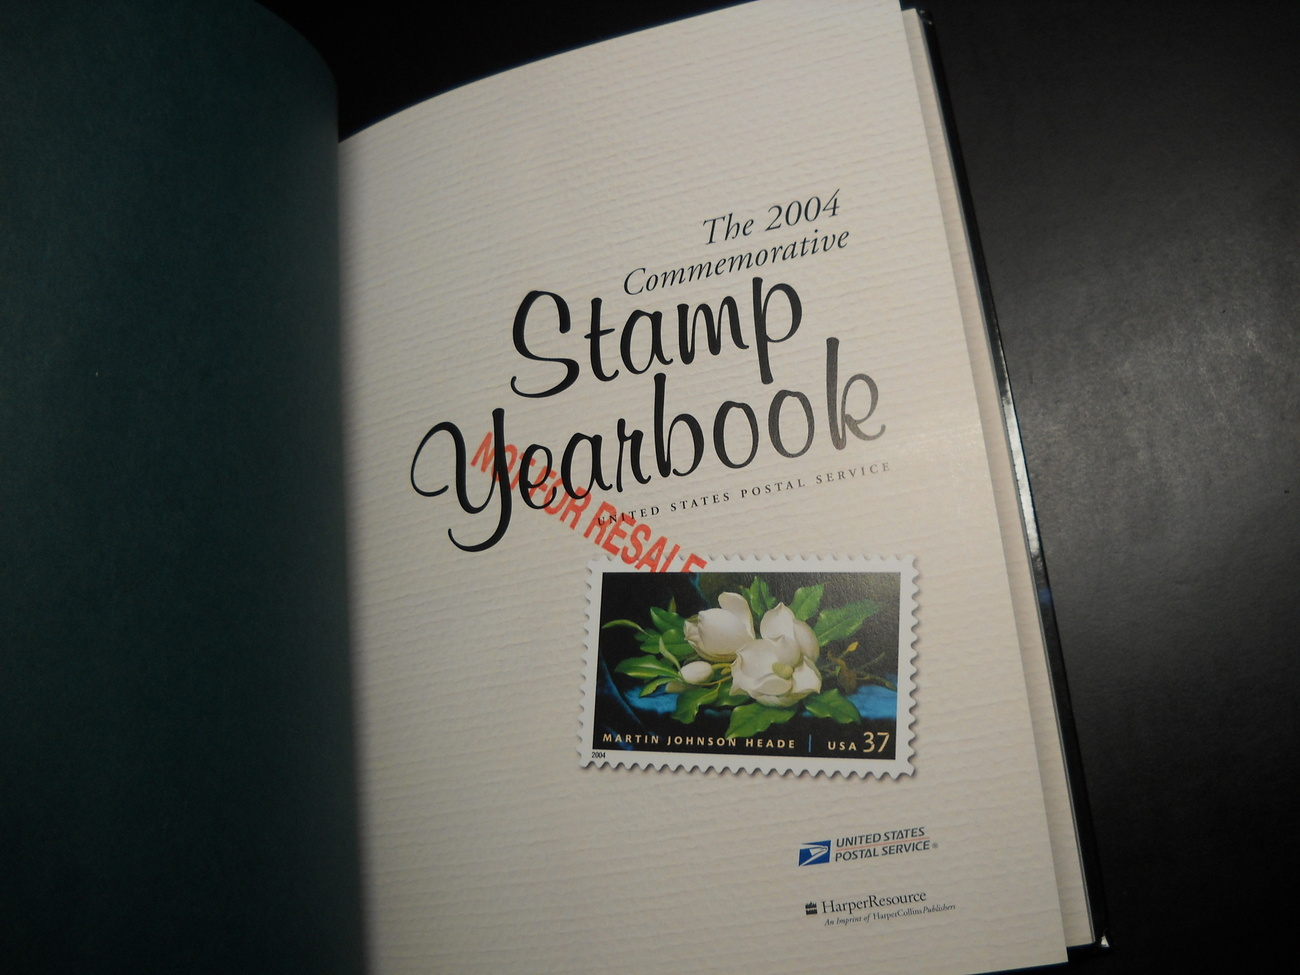 Postal Service The 2004 Commemorative Stamp Yearbook USPS Harper Collins HC